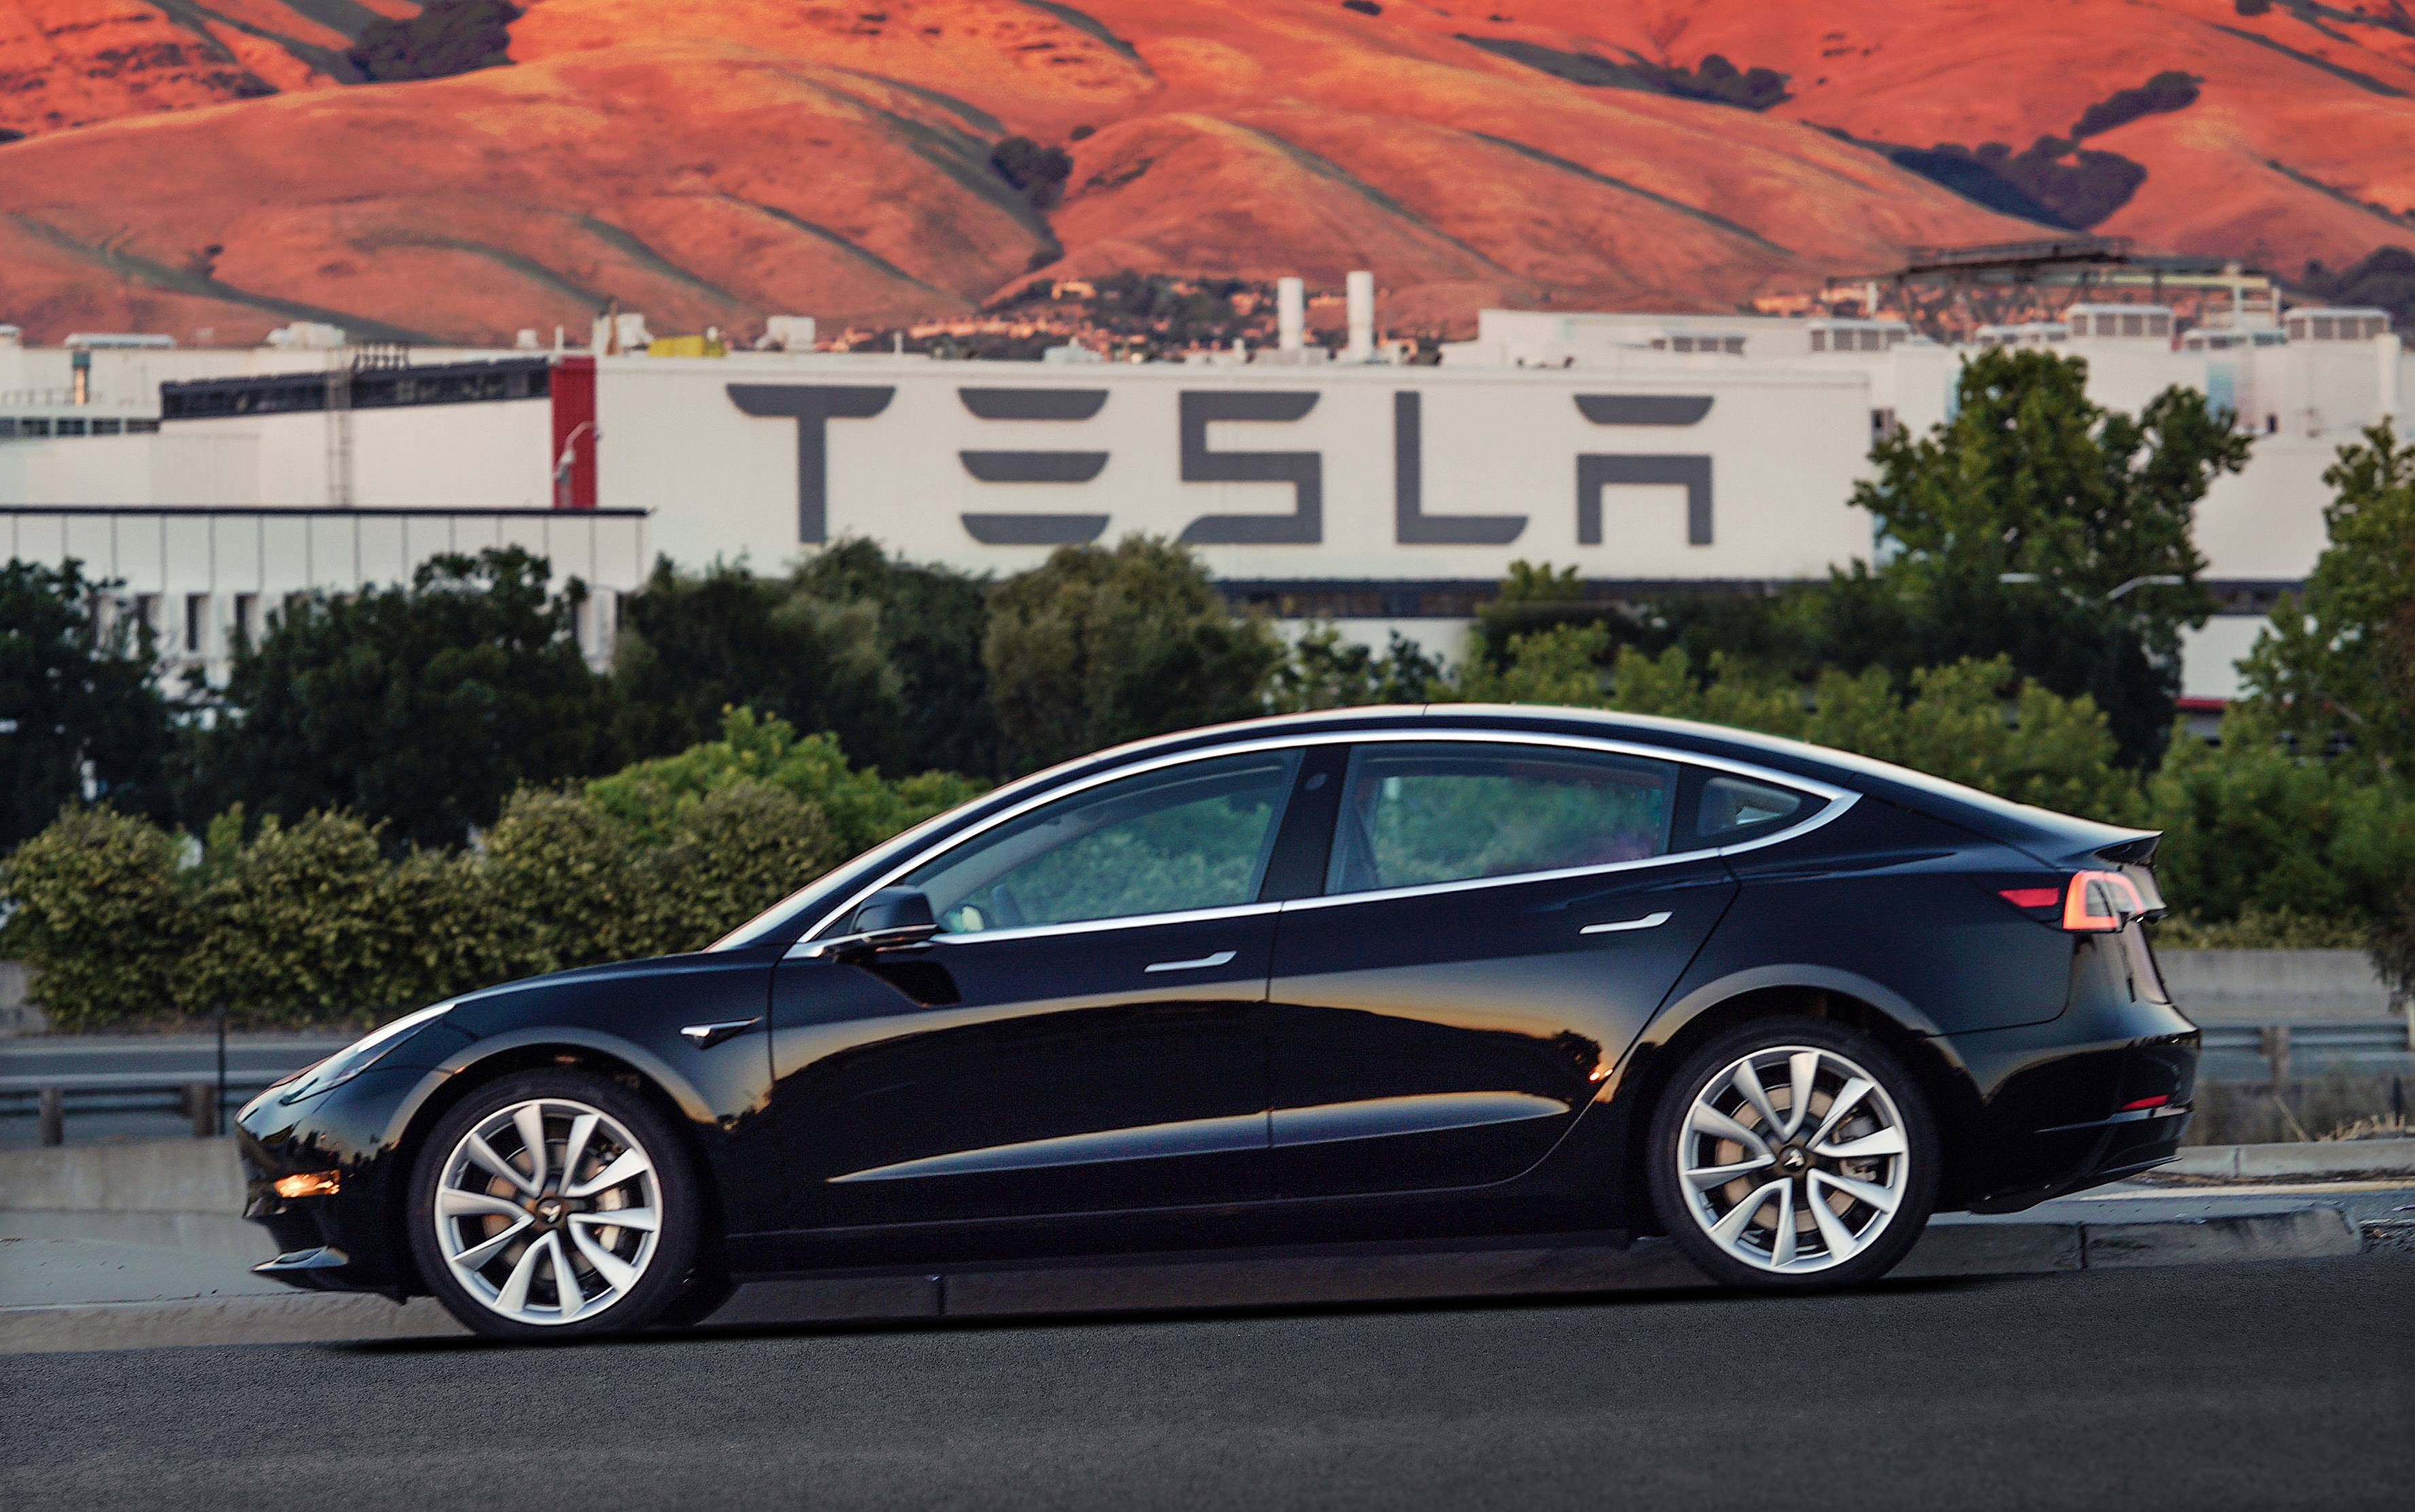 Tesla updated its website for customer reservations on Wednesday, including a table that shows the base Model 3 won't be available until some time next year.(Courtesy of Tesla Motors via AP)